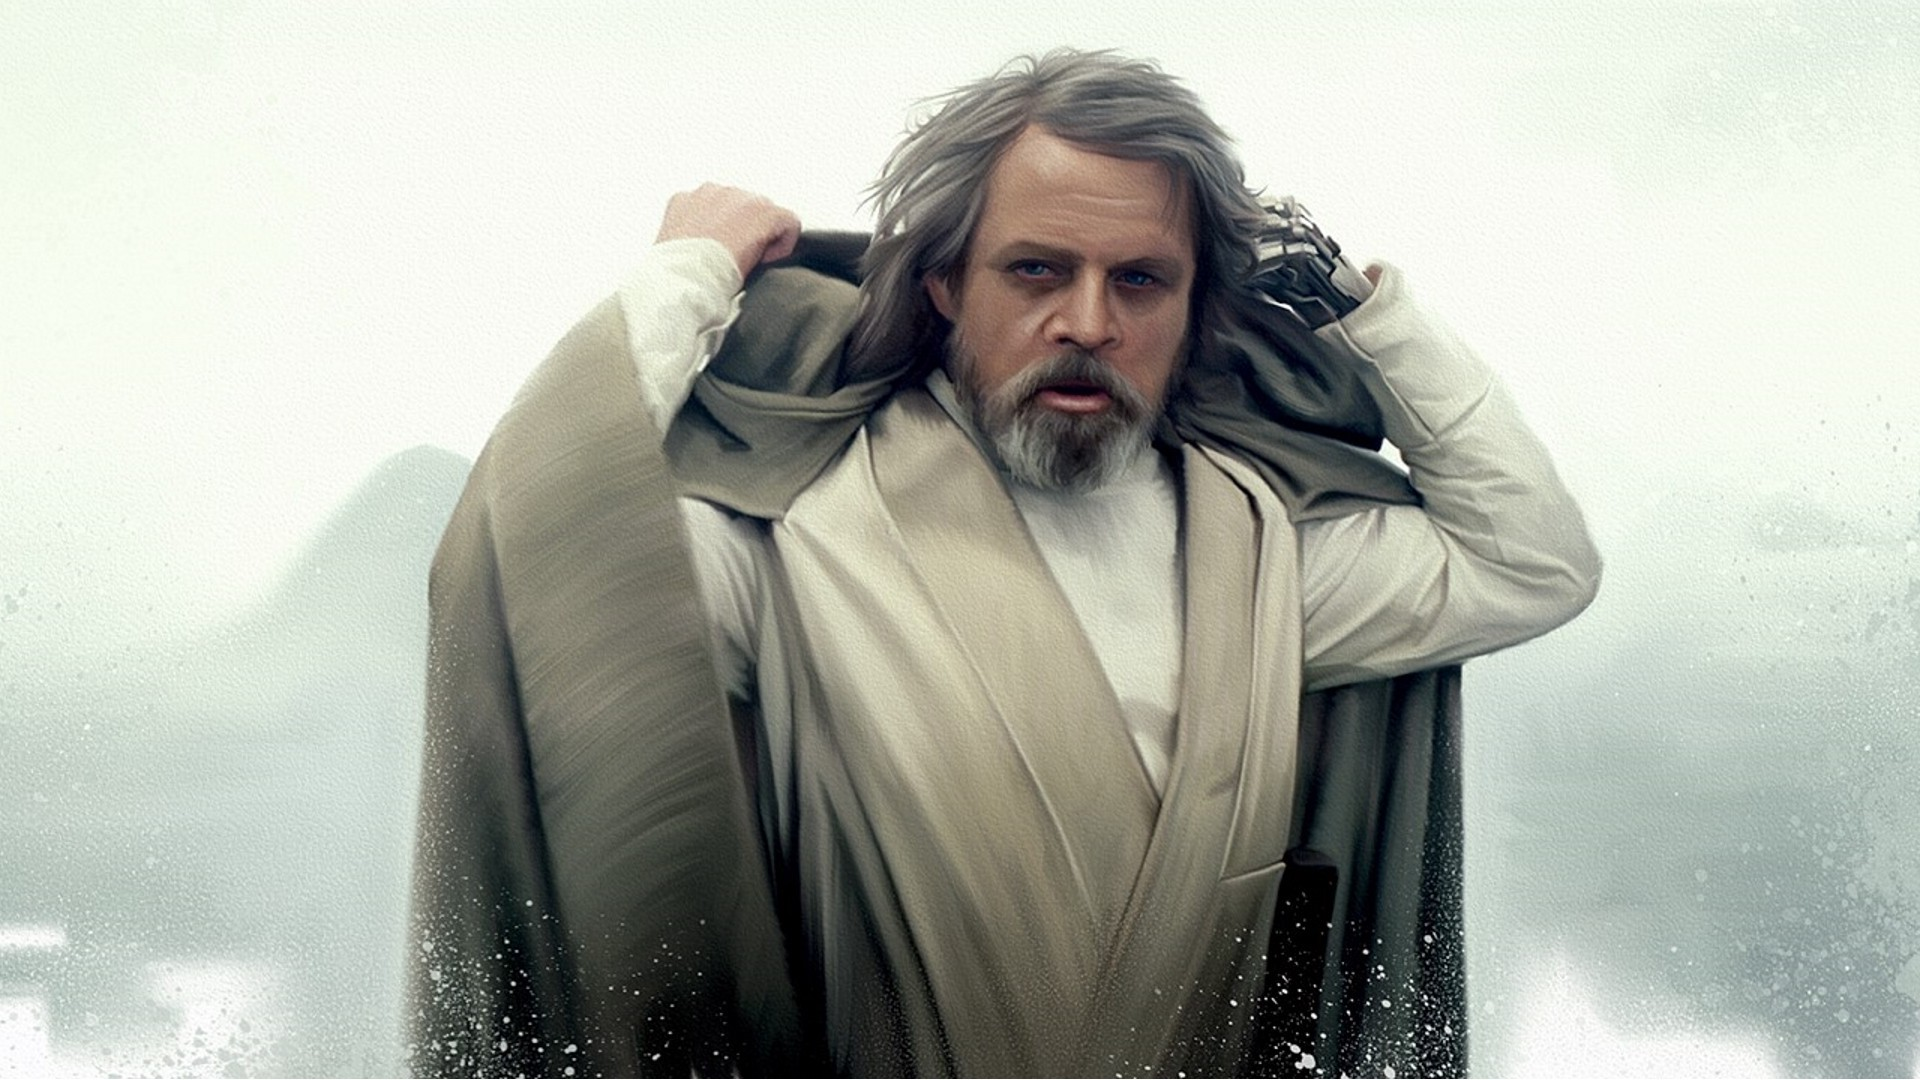 luke skywalker wallpaper 1920x1080